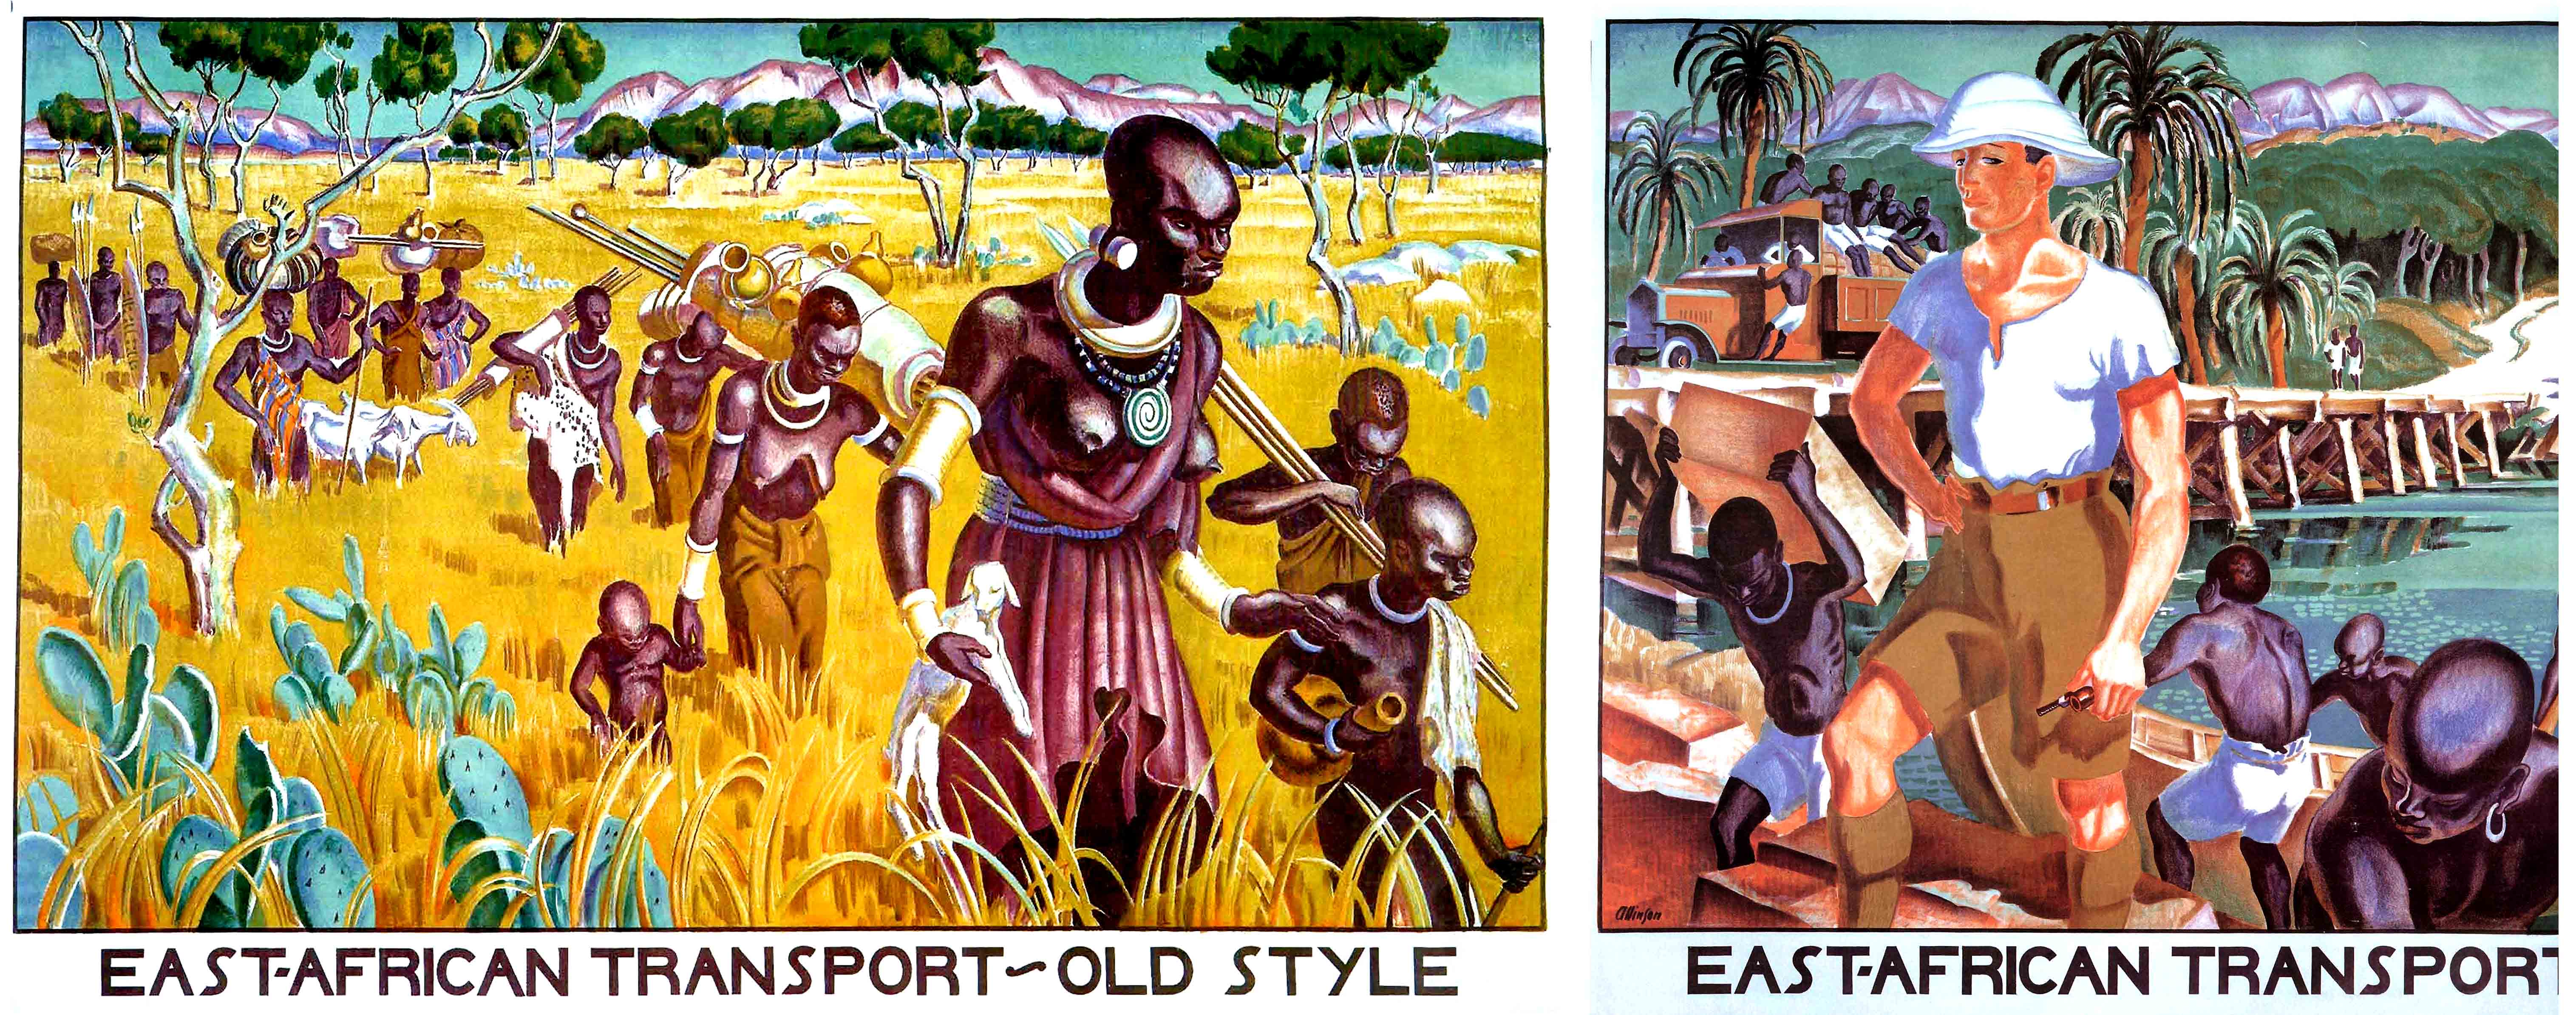 Colonialism And Abstract Art